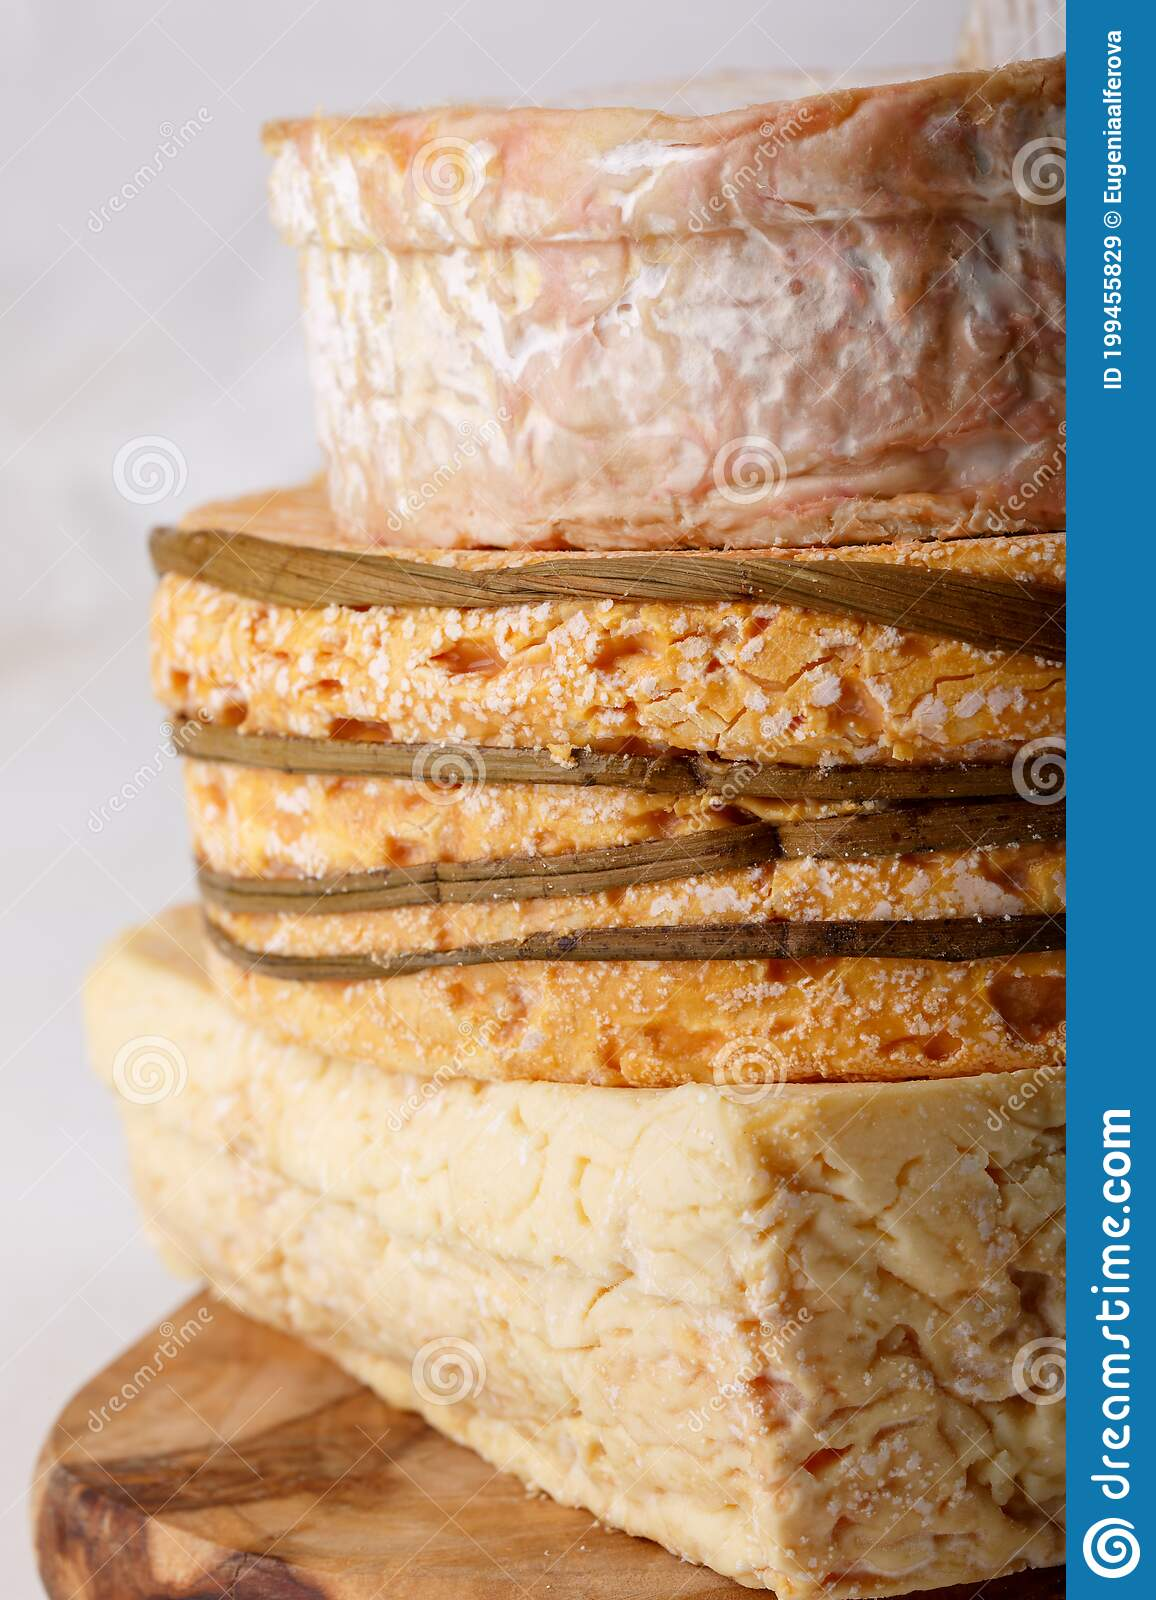 Stack Of Soft French Cow S Milk Cheese On A Cutting Board On White Camembert Livarote Pont L Eveque Cheese From Normandy Clo Stock Image Image Of Appetizer Meal 199455829